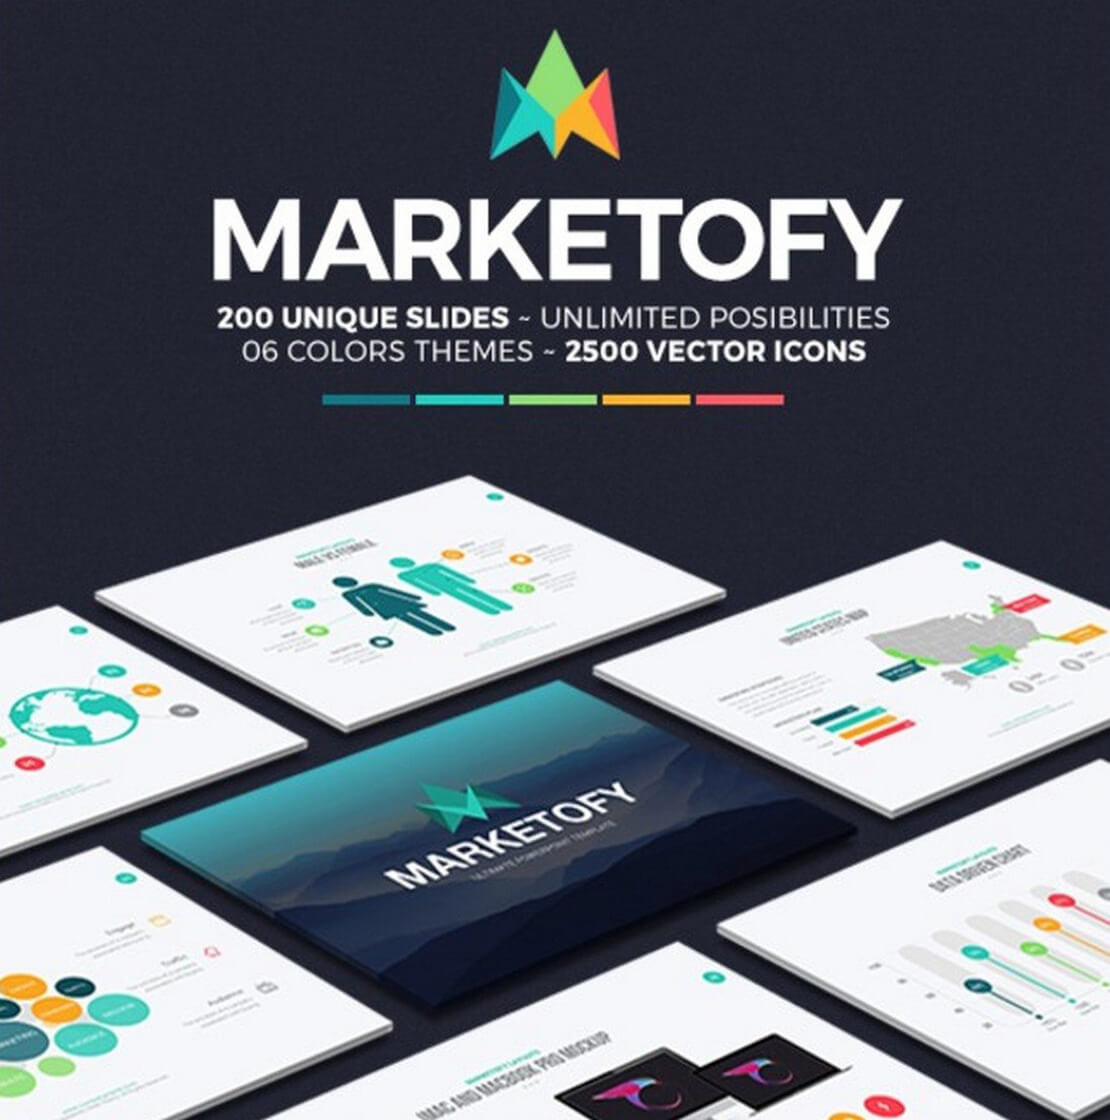 marketofy For Best Keynote Template